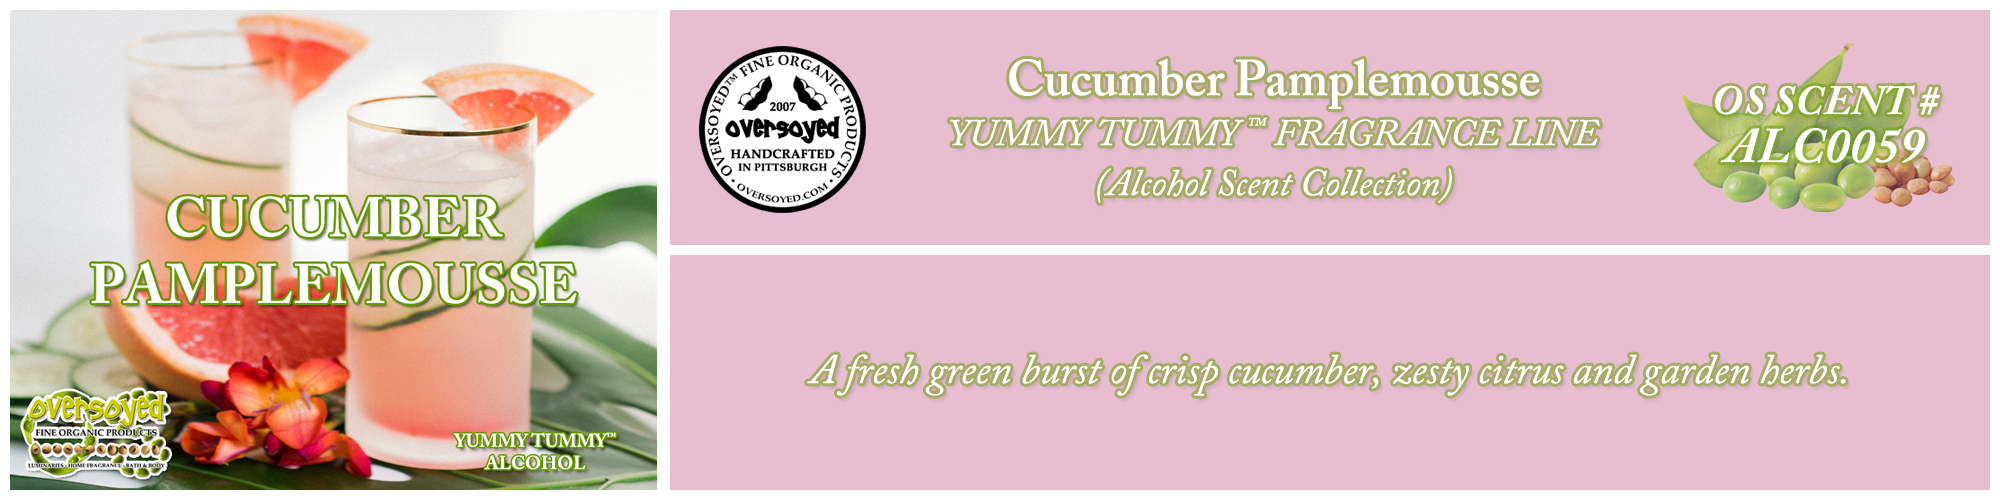 Cucumber Pamplemousse Handcrafted Products Collection